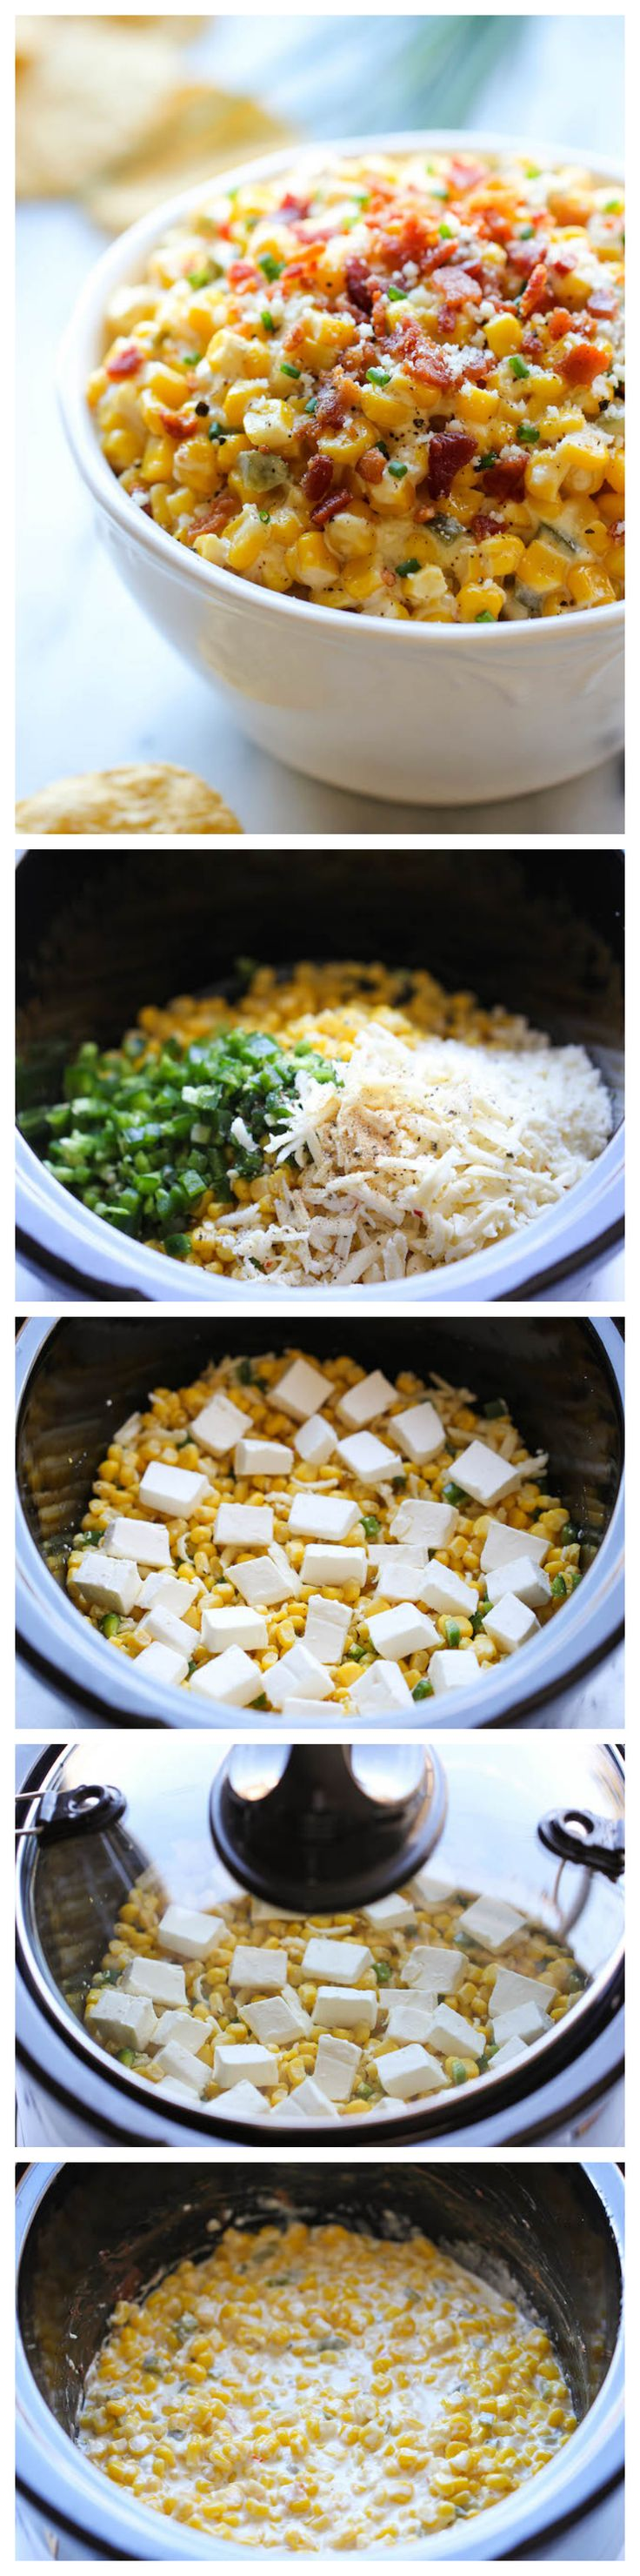 Slow Cooker Corn and Jalapeno Dip - @Michele Morales Morales Morales Morales Morales Morales Howard Delicious